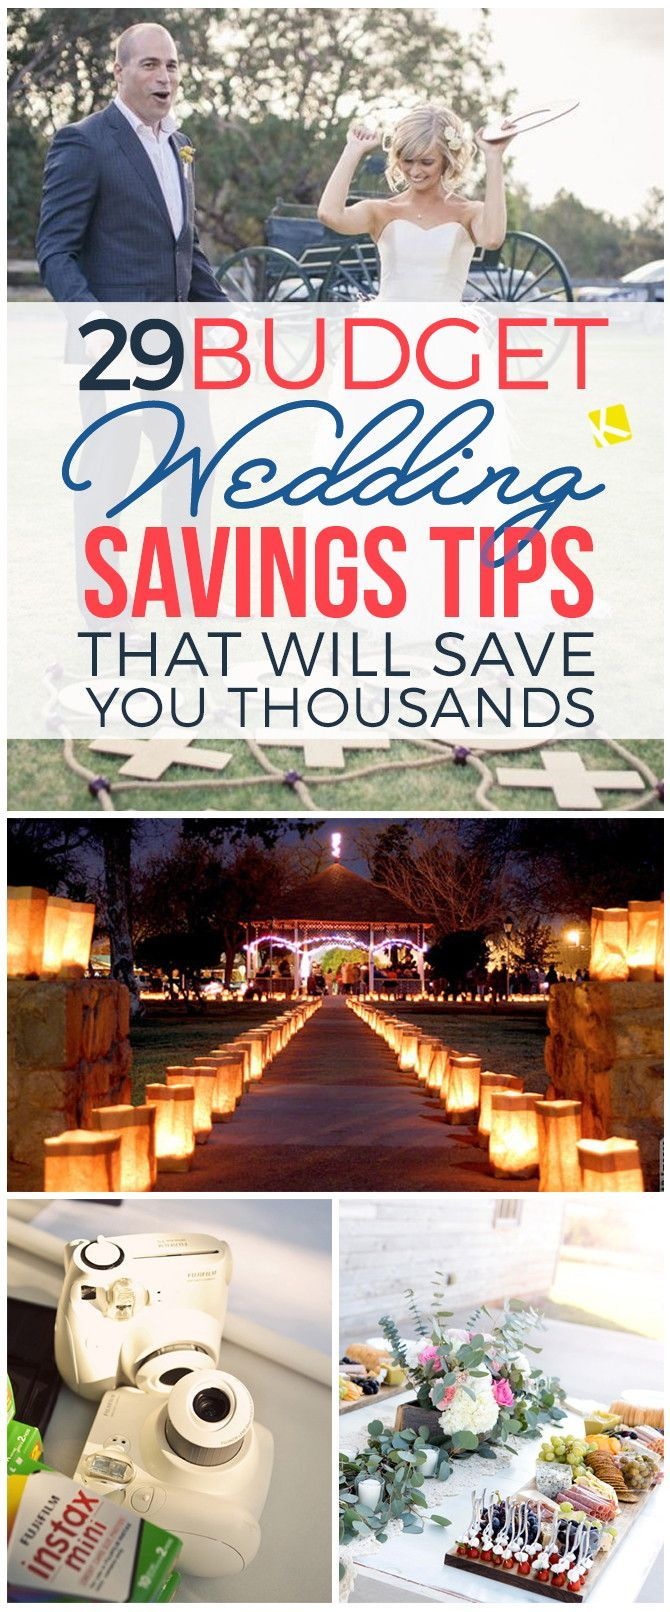 Budget wedding tips - great resource!